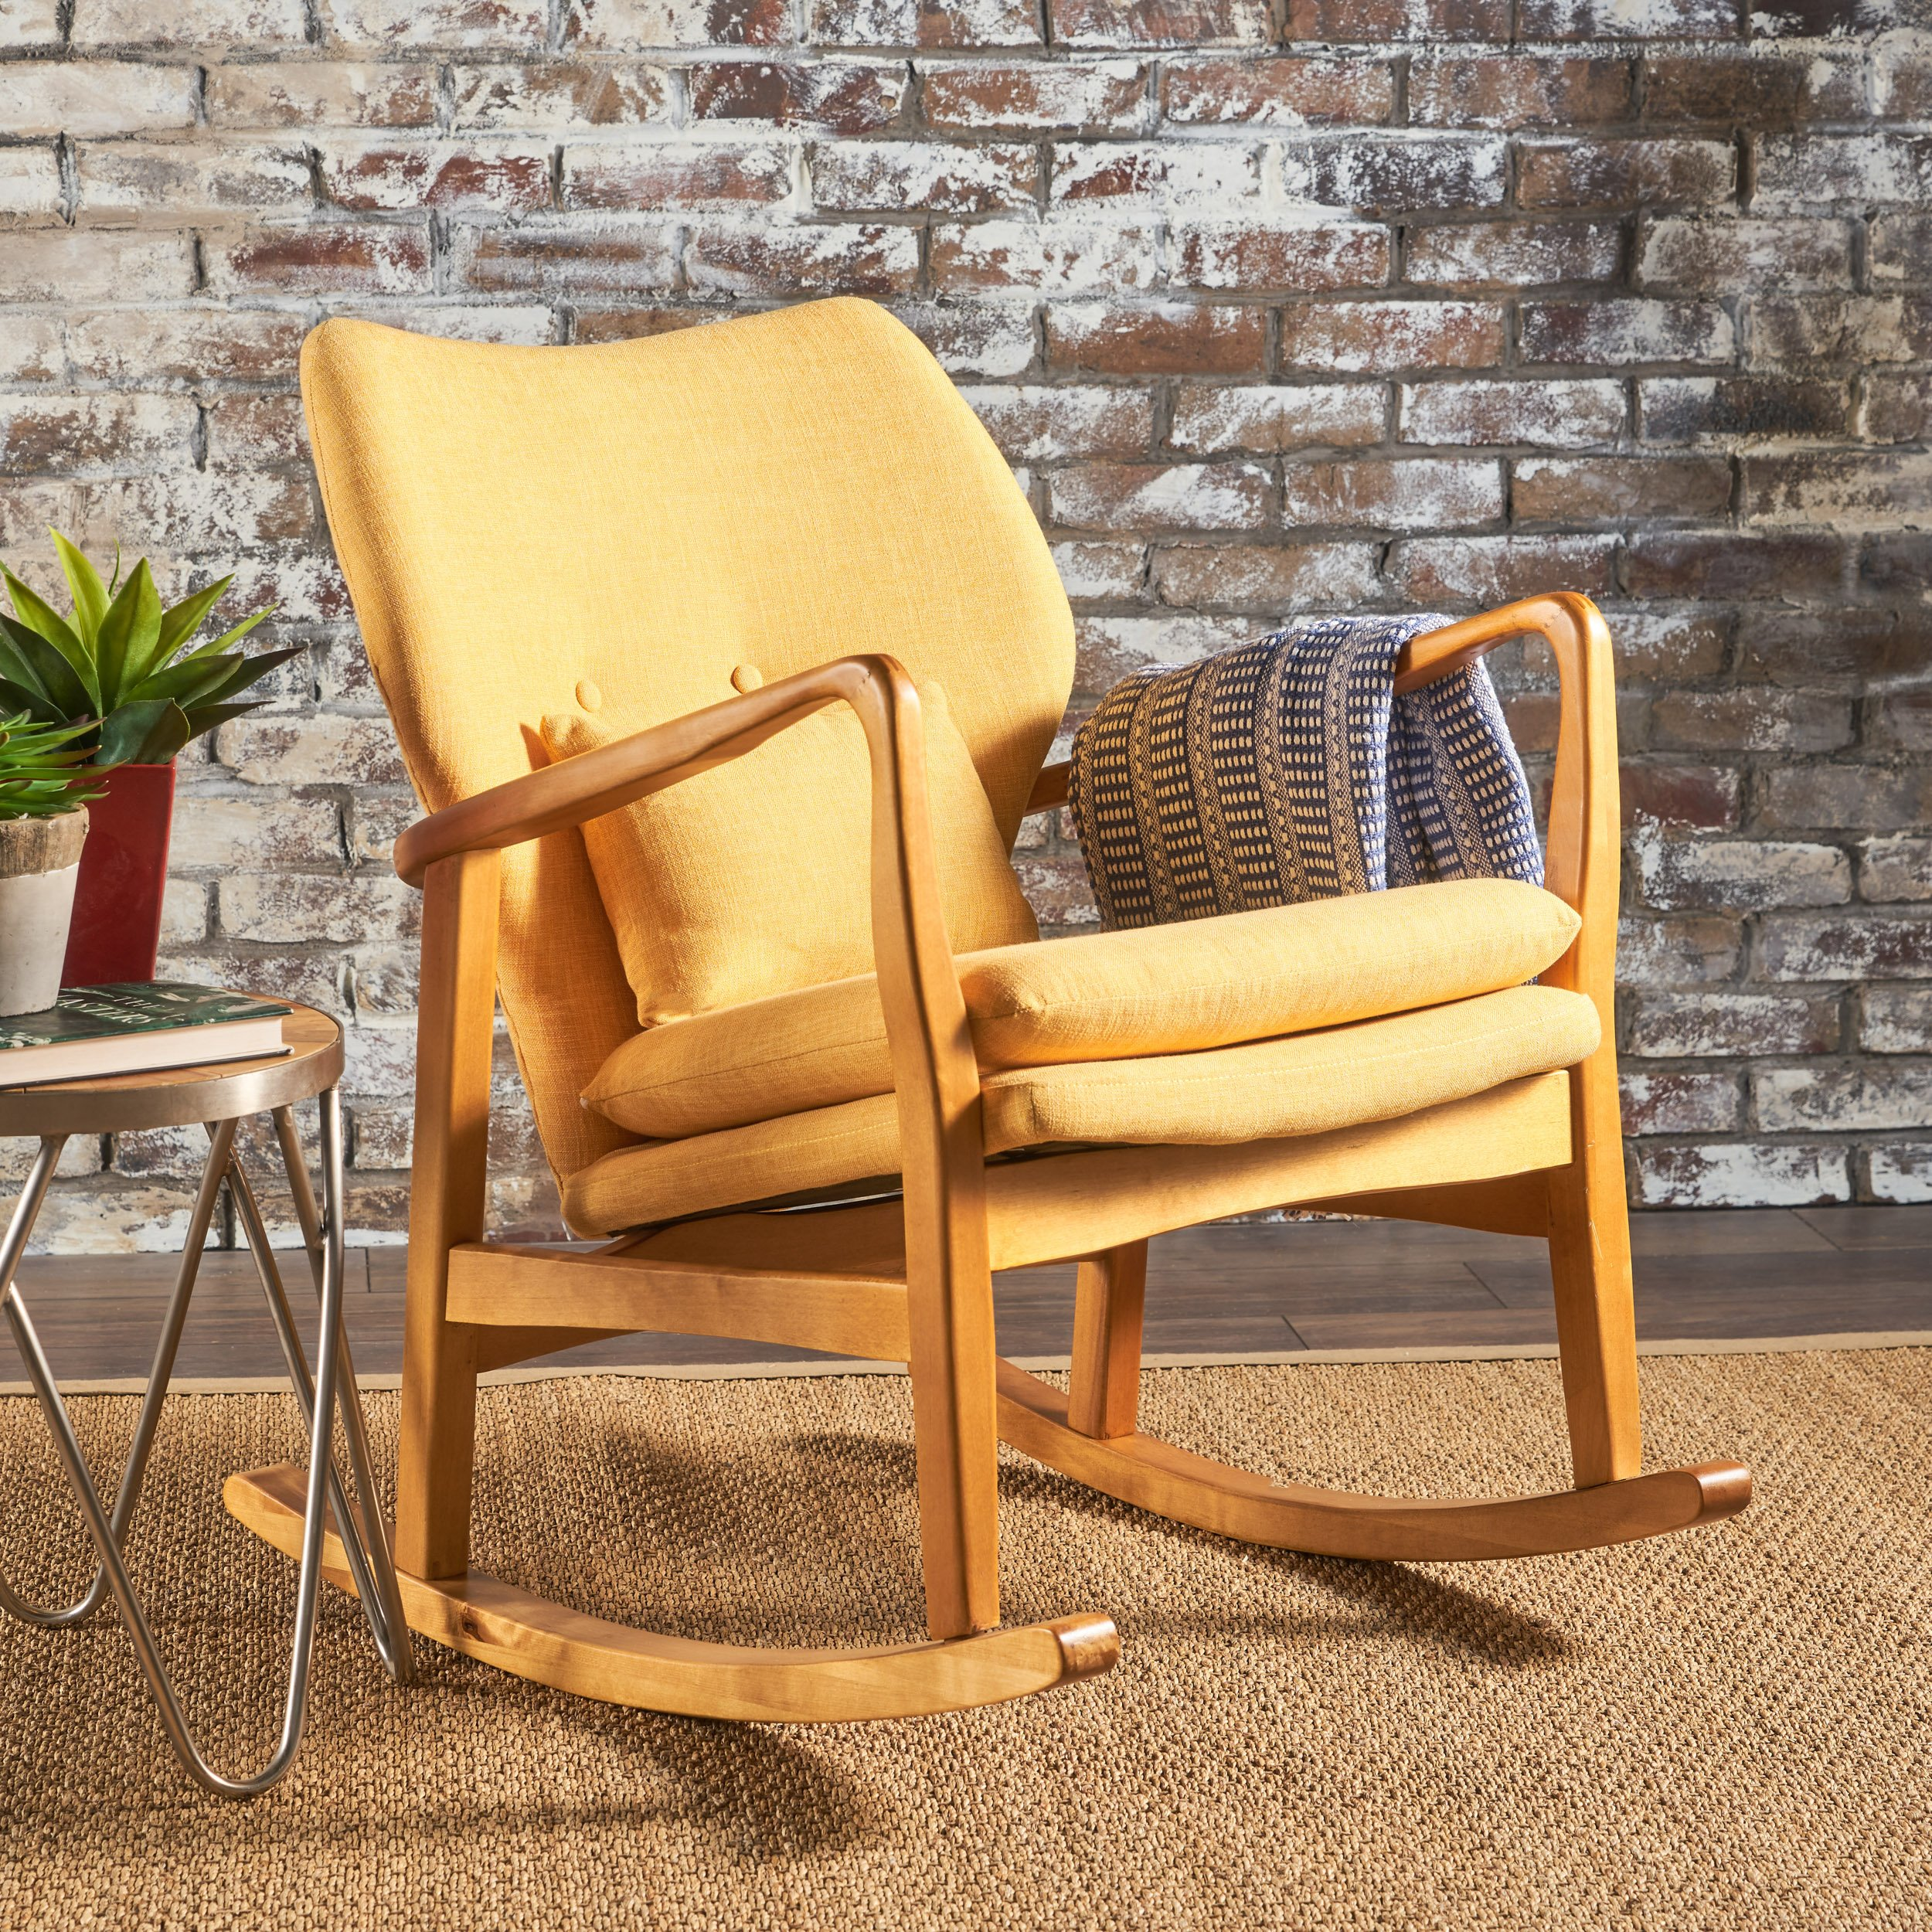 Christopher Knight Home Balen Mid Century Modern Fabric Rocking Chair (Muted Yellow) by Christopher Knight Home